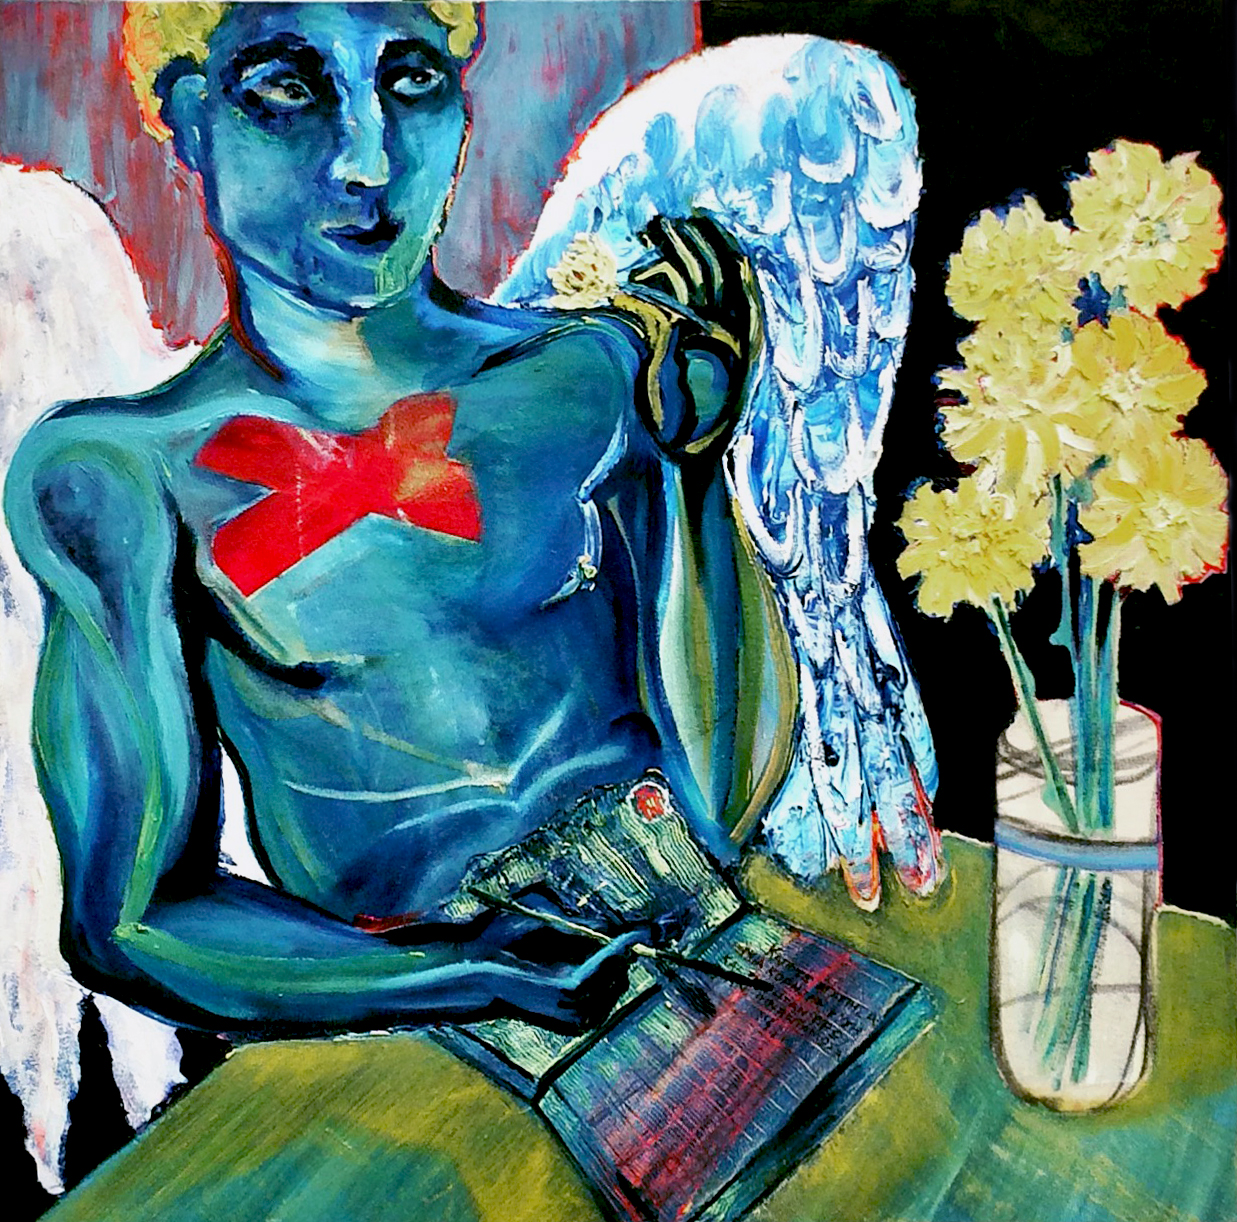 The Poet of Love   Oil on canvas, 60x60 cm / 23x23 inches